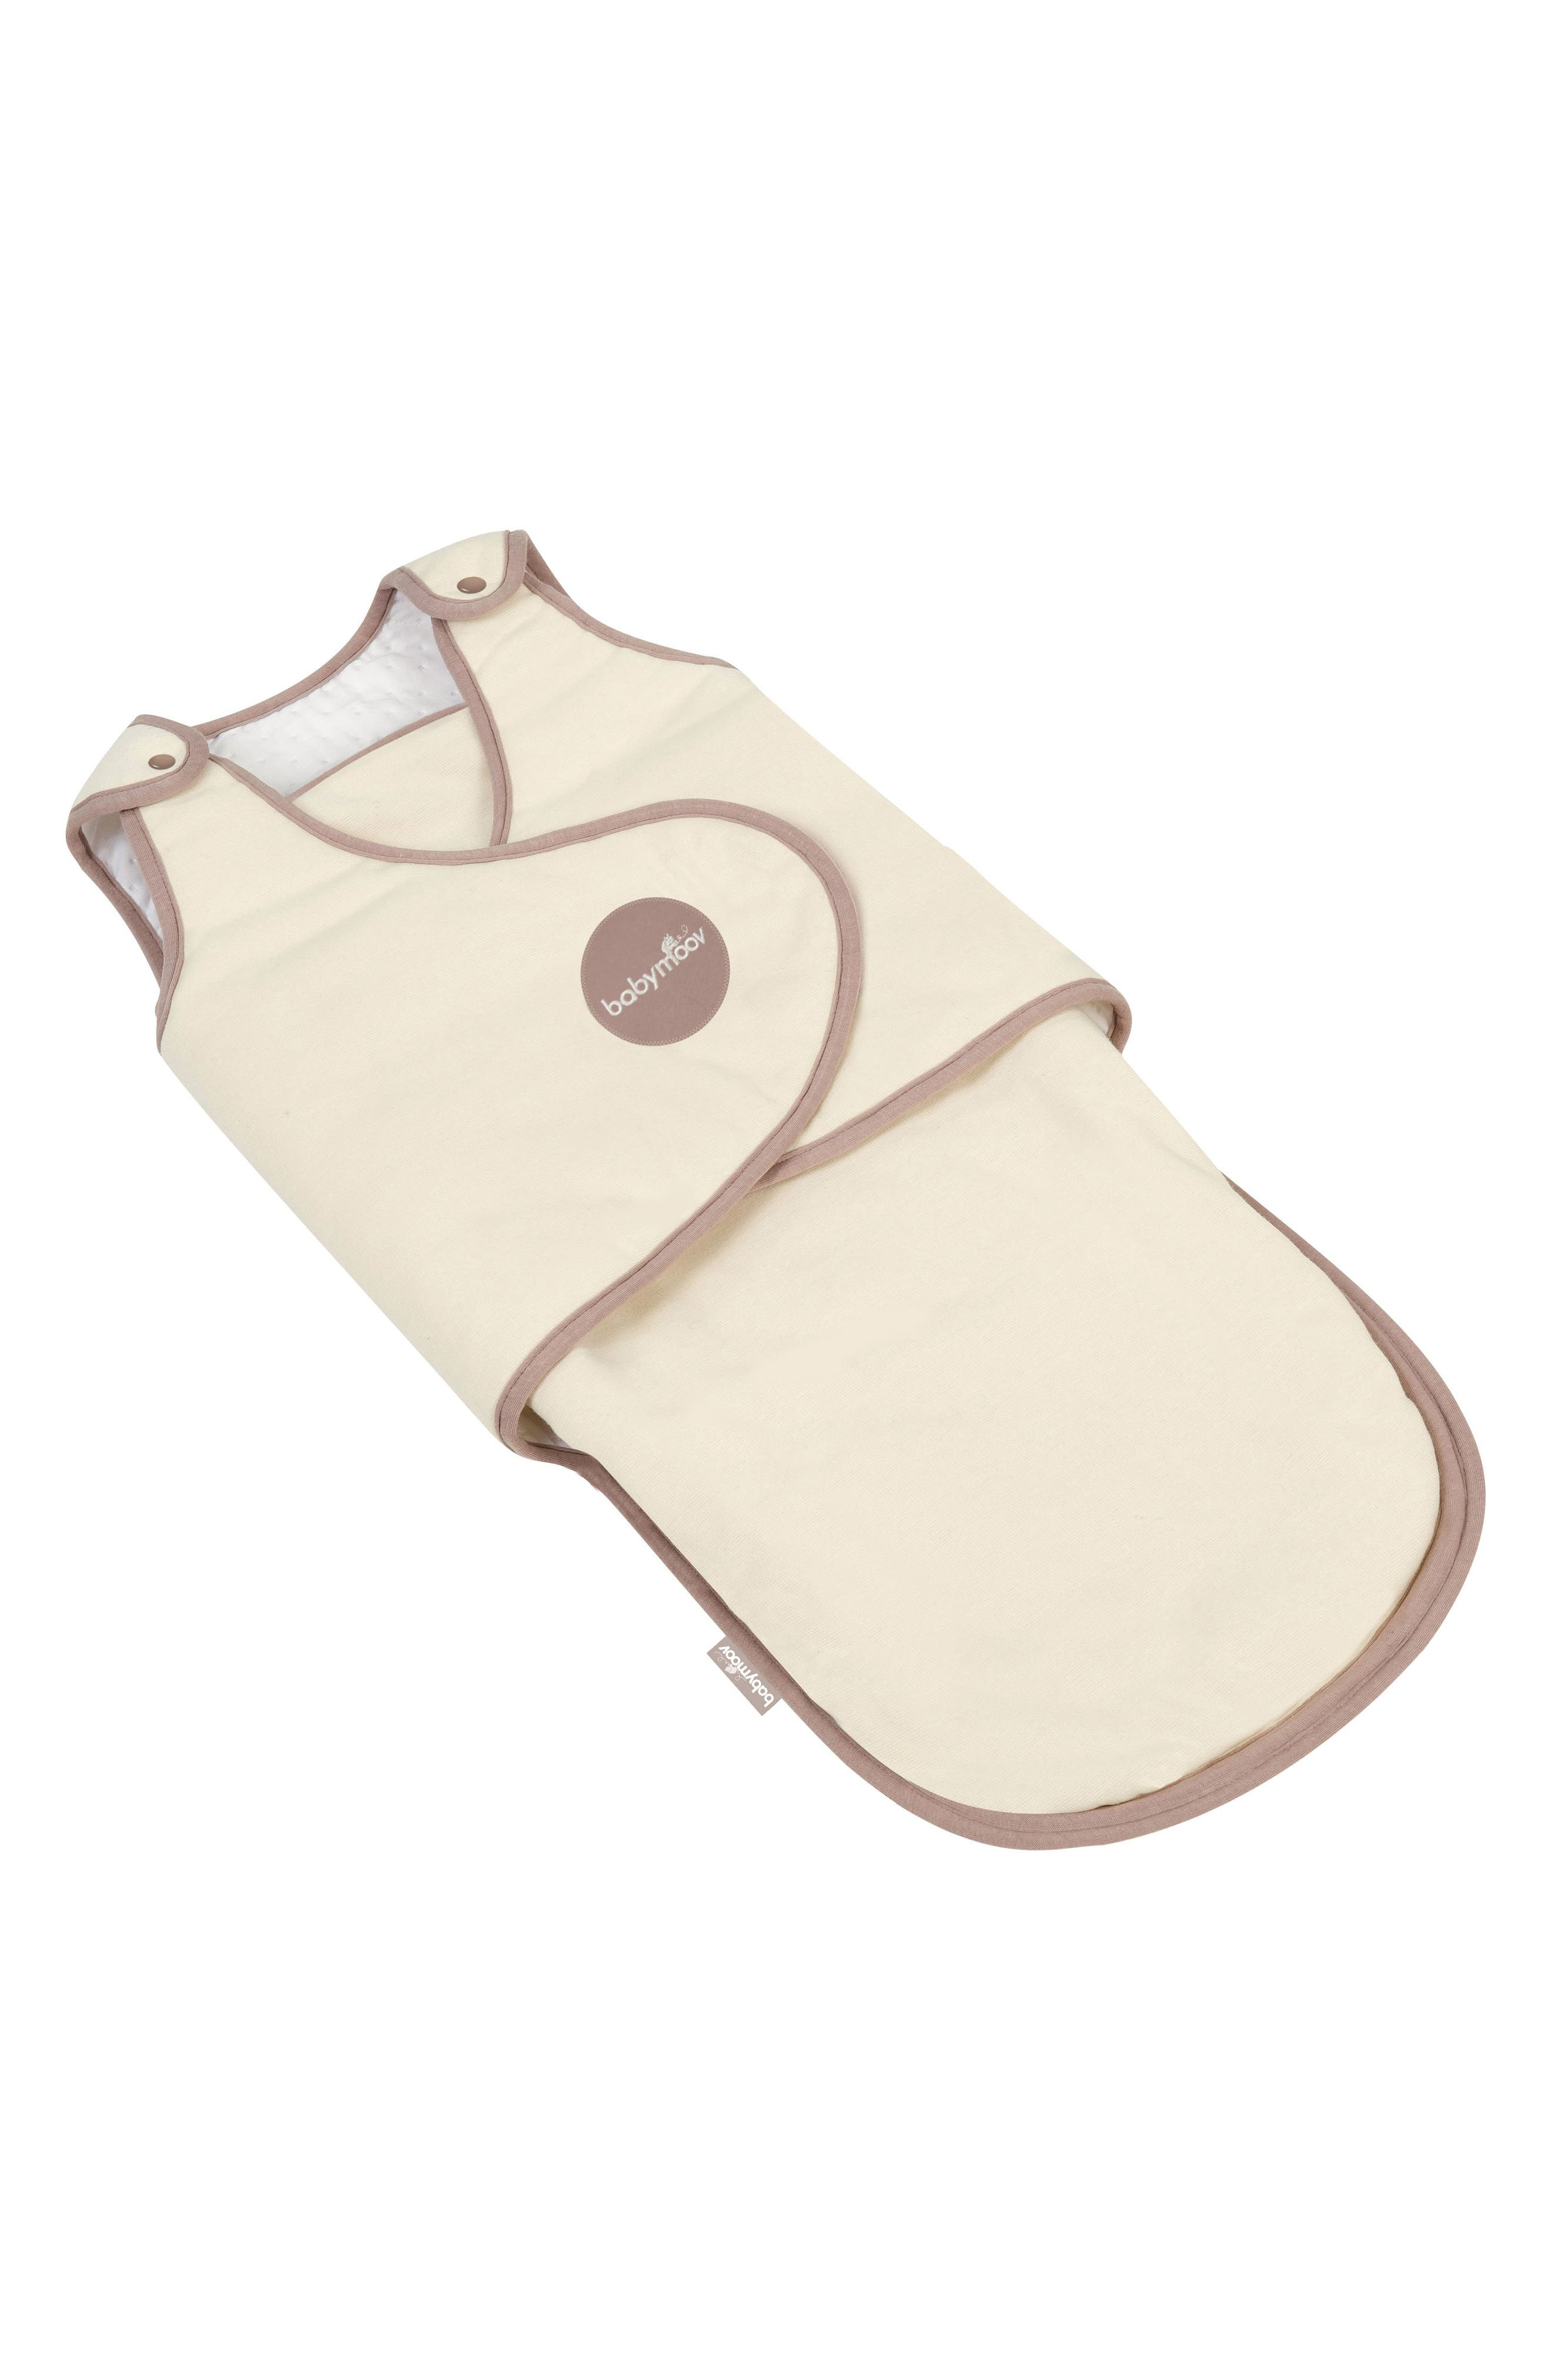 CosyBag Swaddle Wrap Blanket,                             Main thumbnail 1, color,                             CREAM